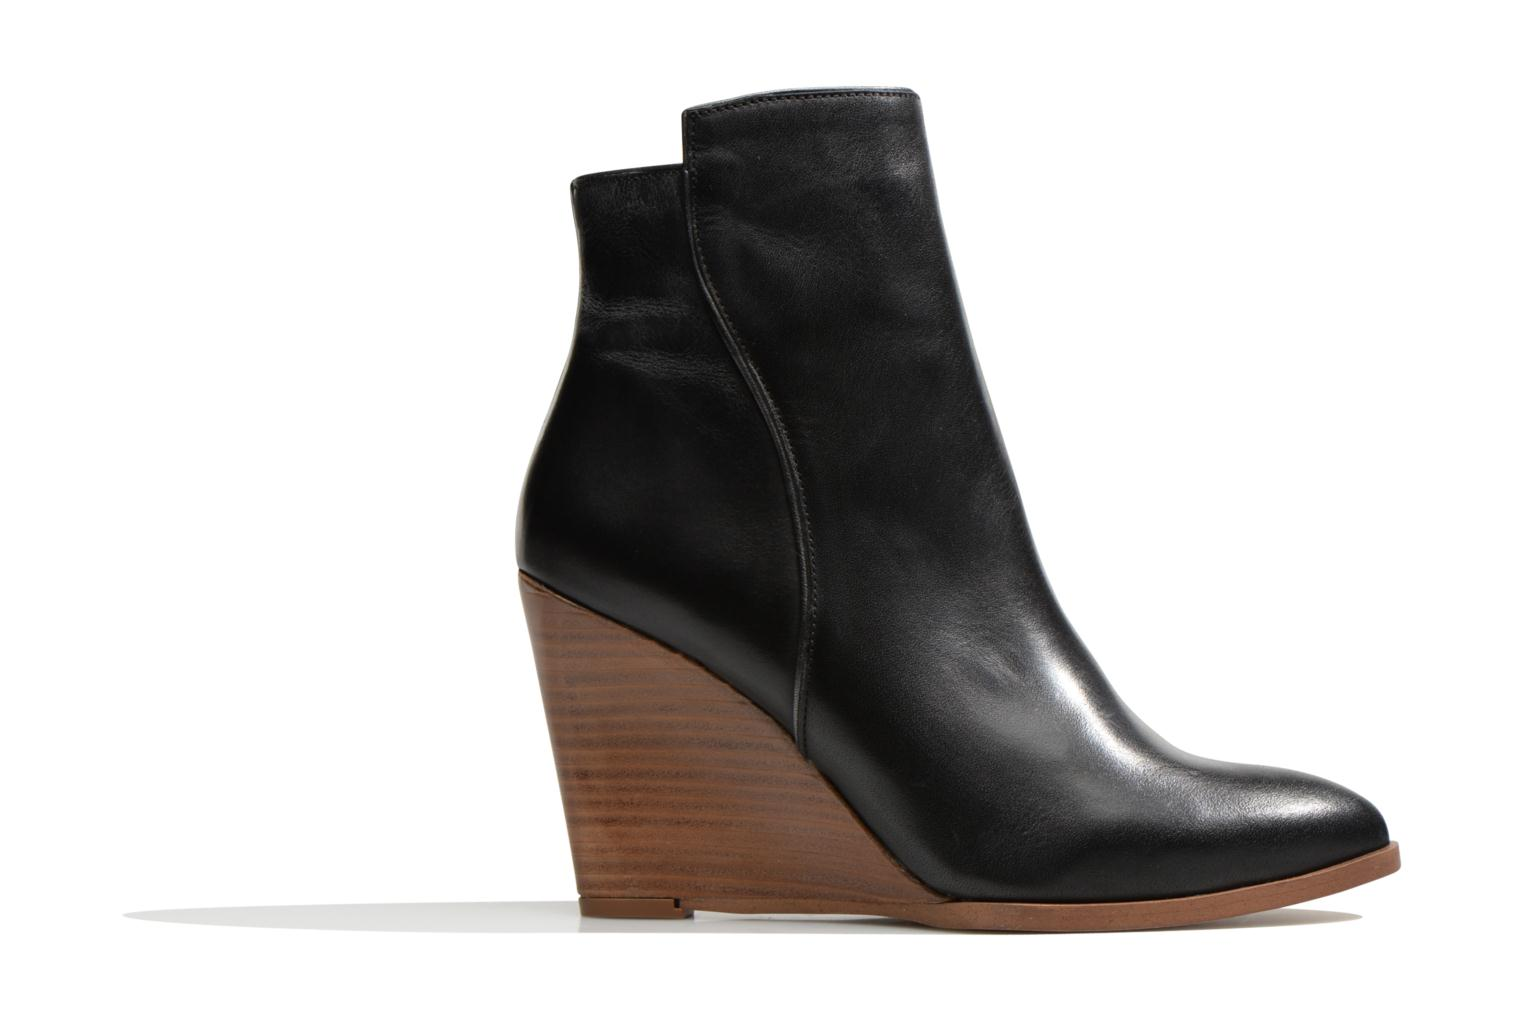 Boots Camp #11 Surf noir + piping olympo